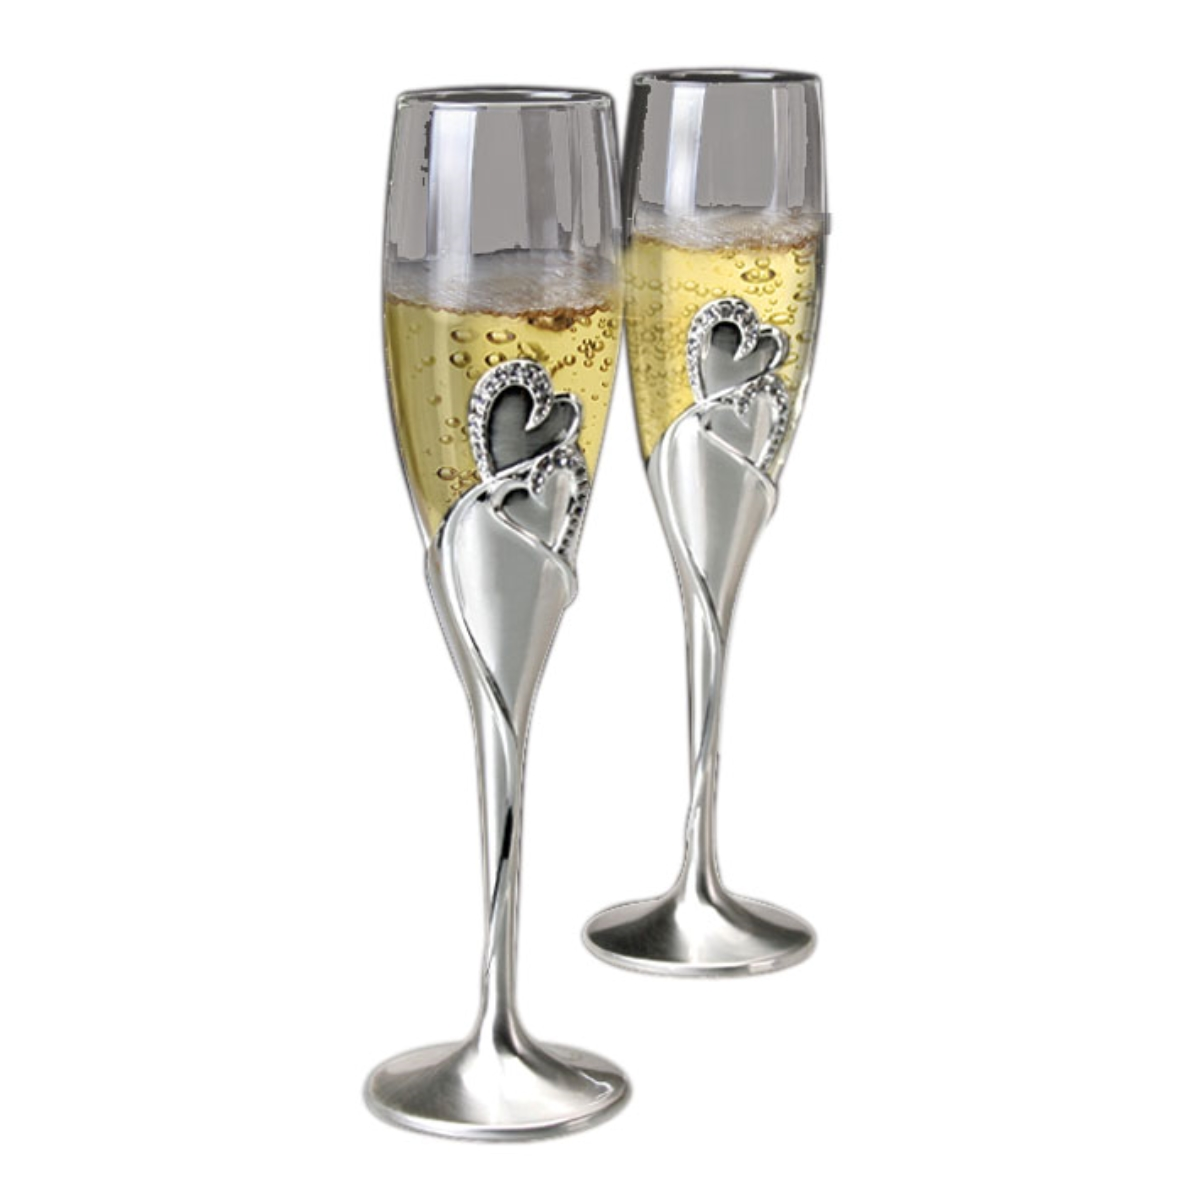 wed001-champaign-glasses-2pc-set